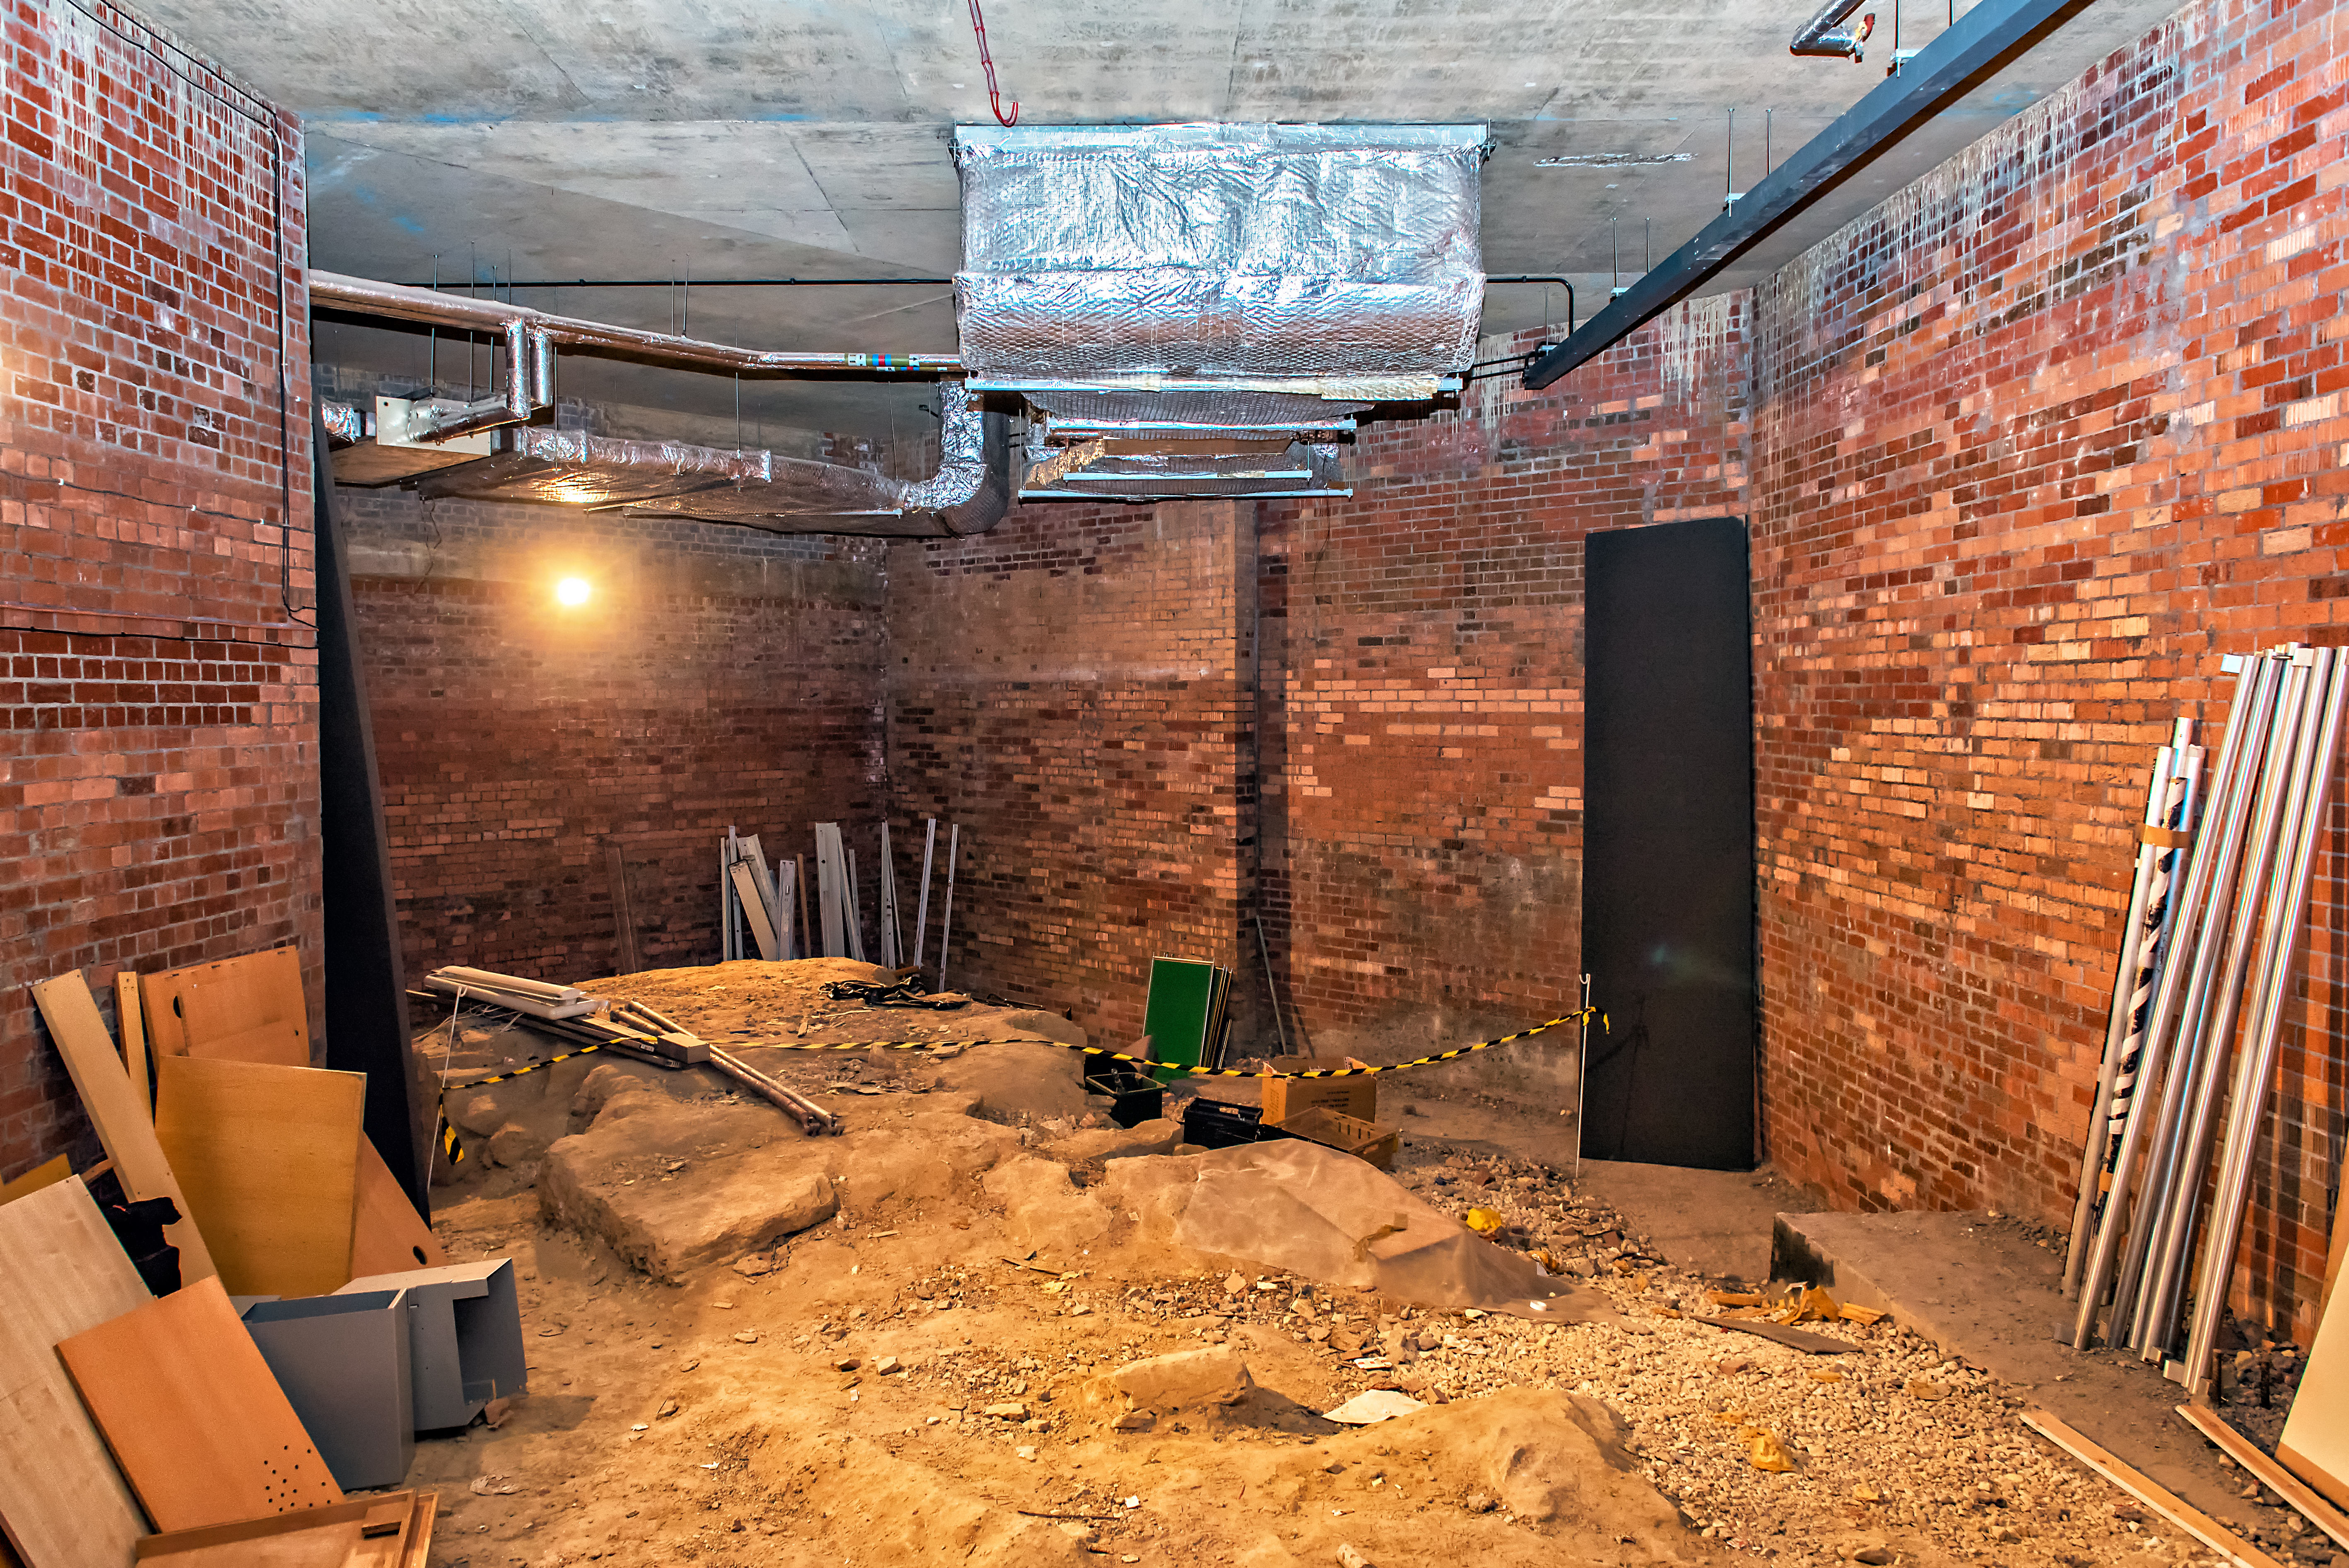 Major Boost to West Yorkshire Playhouse Redevelopment